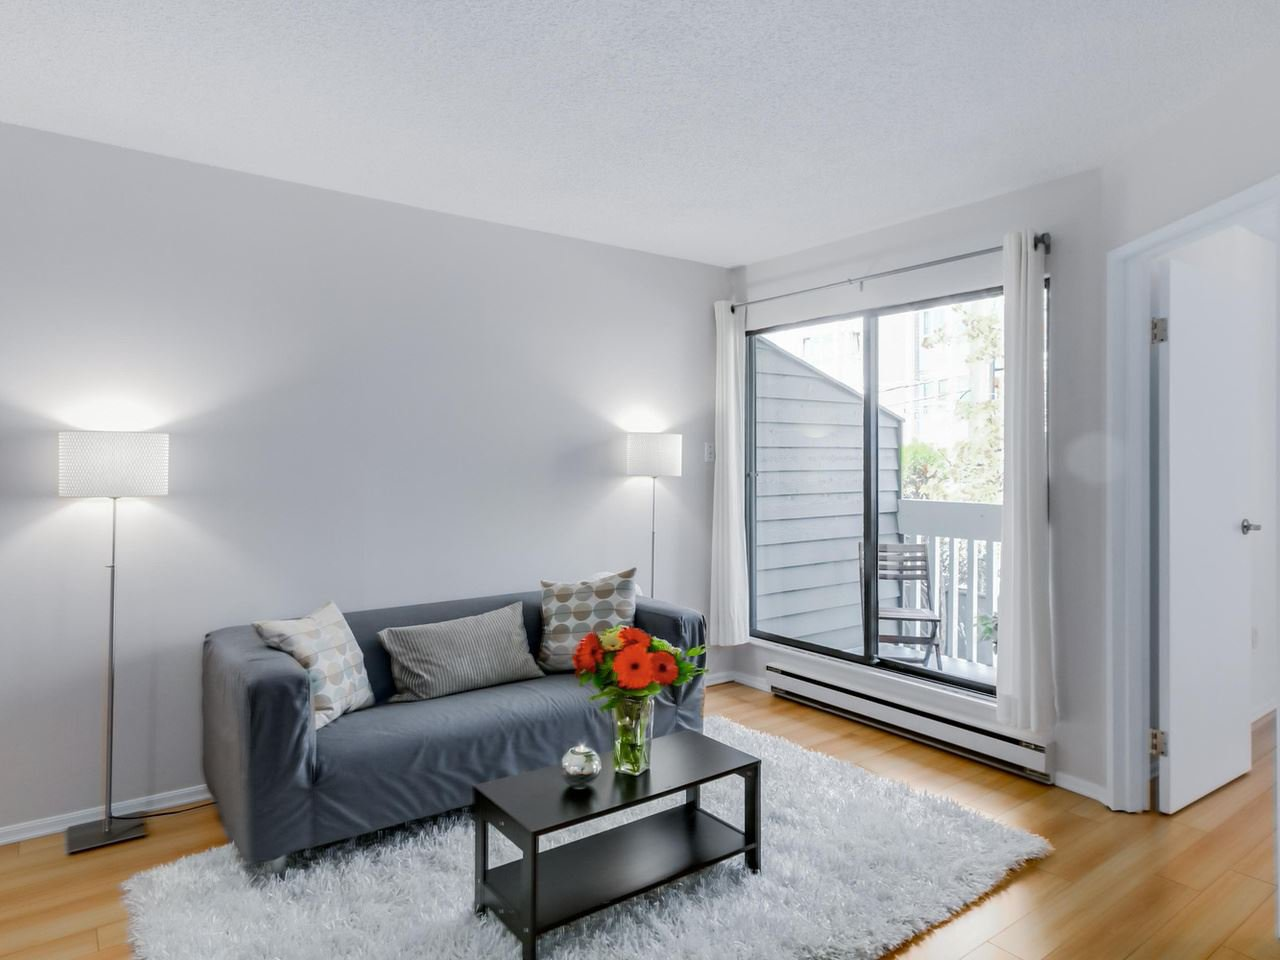 """Photo 7: Photos: 207 1545 E 2ND Avenue in Vancouver: Grandview VE Condo for sale in """"TALISHAN WOODS"""" (Vancouver East)  : MLS®# R2086466"""